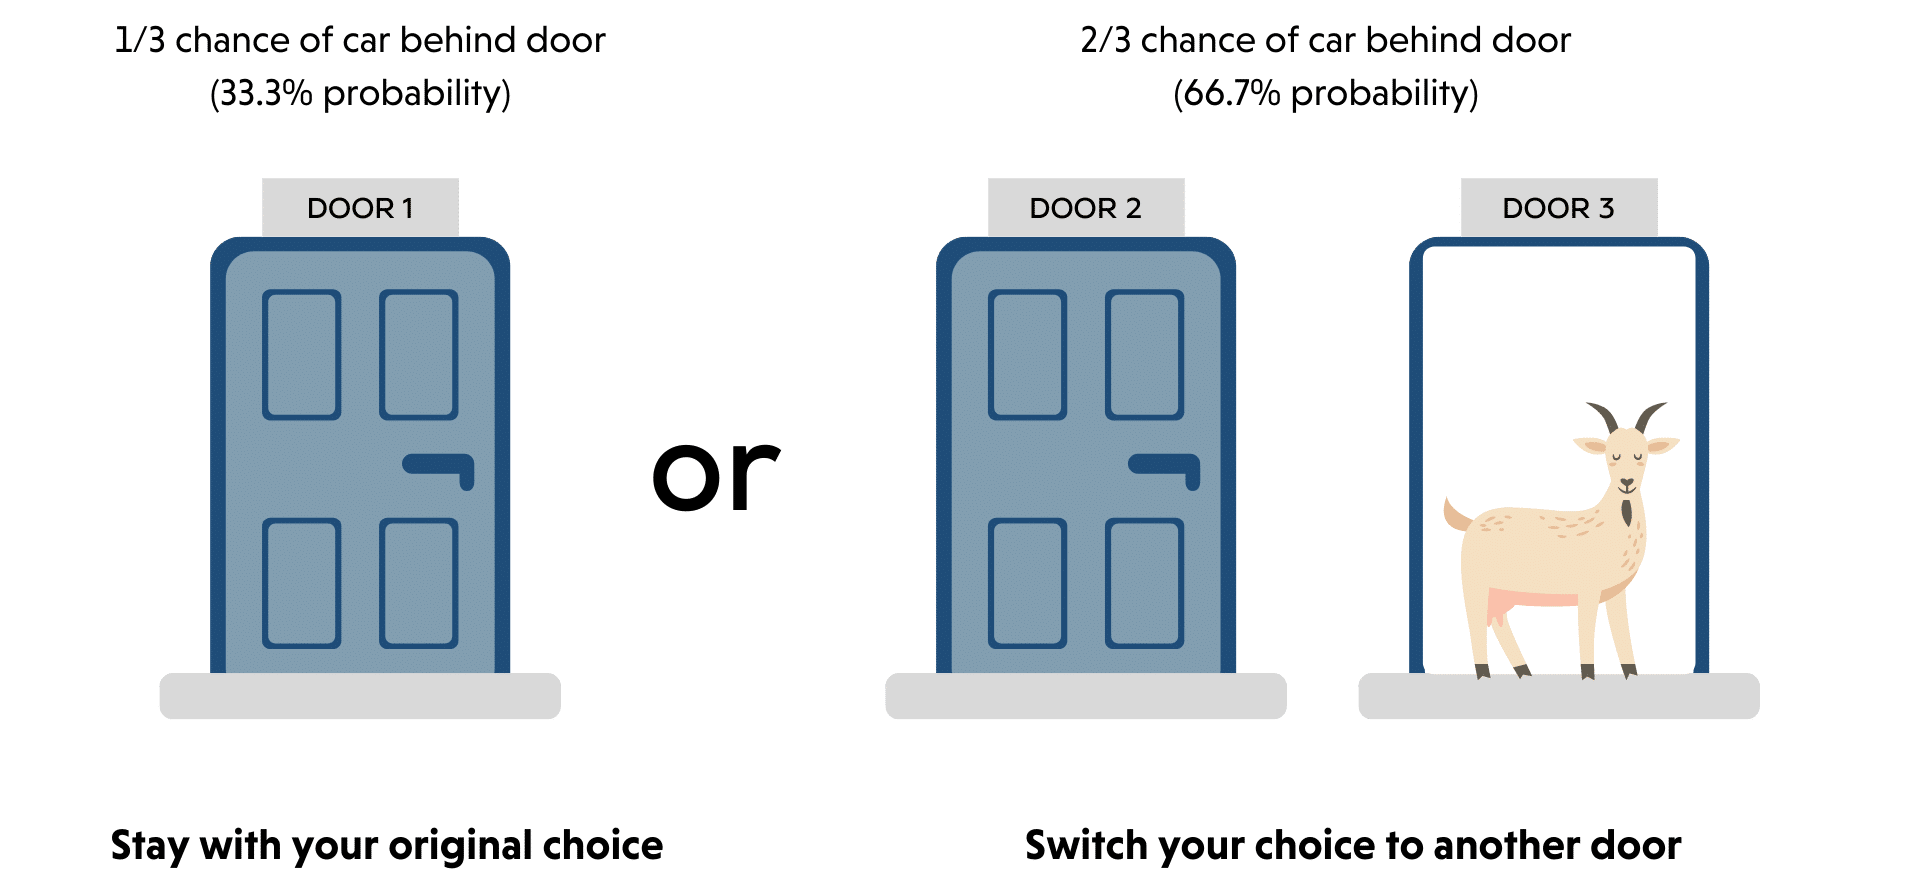 The Monty Hall Problem Probability of Changing Your Original Choice